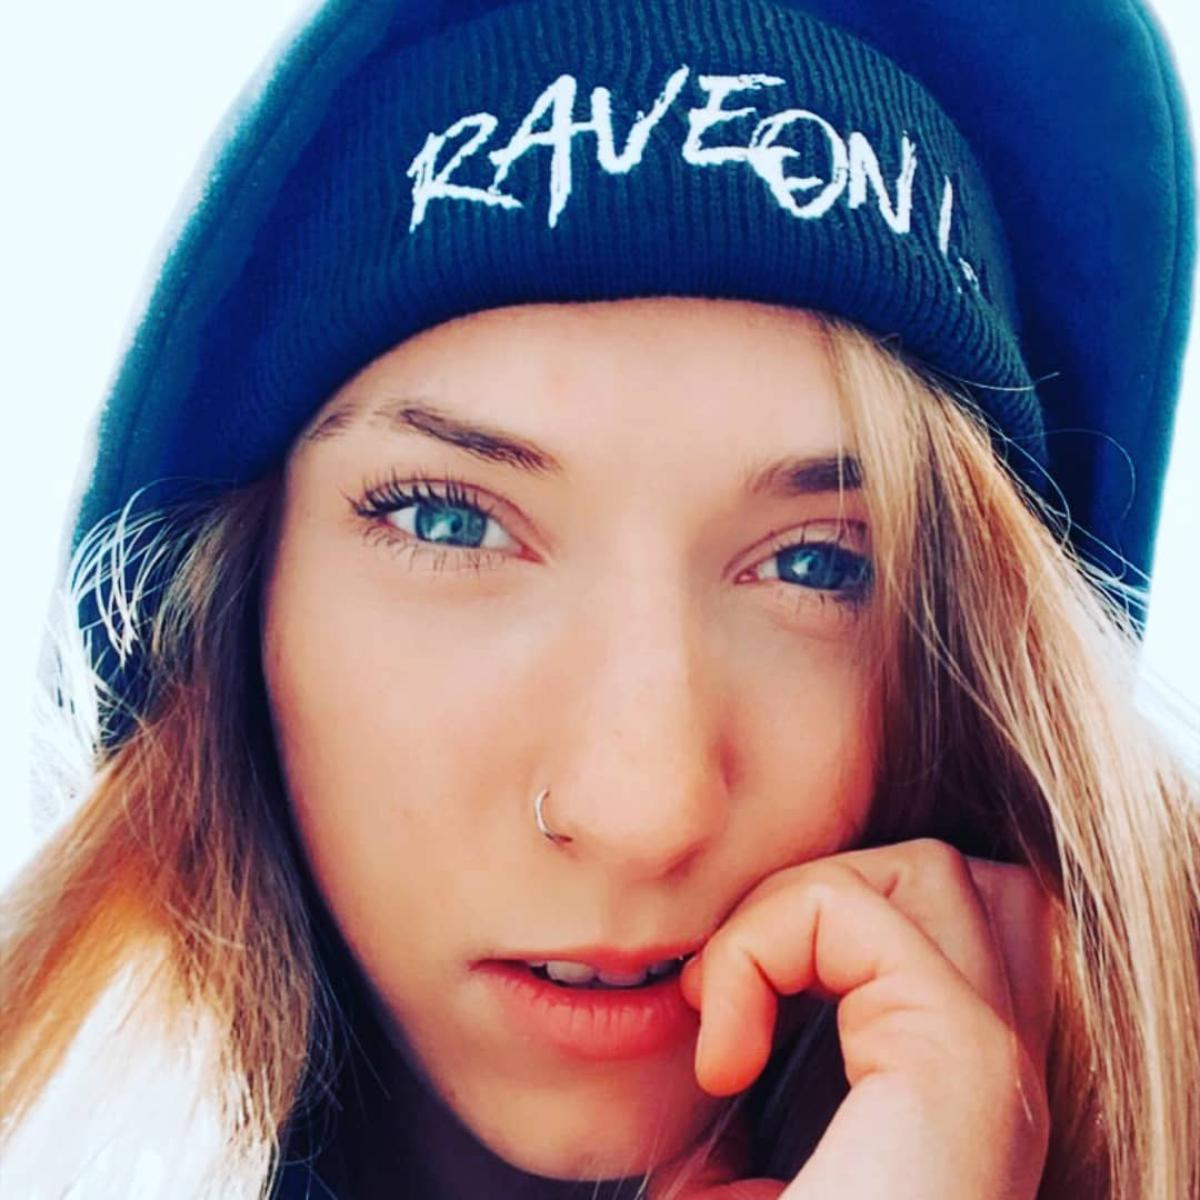 Rave On!® Beanie hat Black hat with embroidery - Rave On!® the club & techno scene shop for cool young fashion streetwear style & fashion outfits + sexy festival 420 stuff